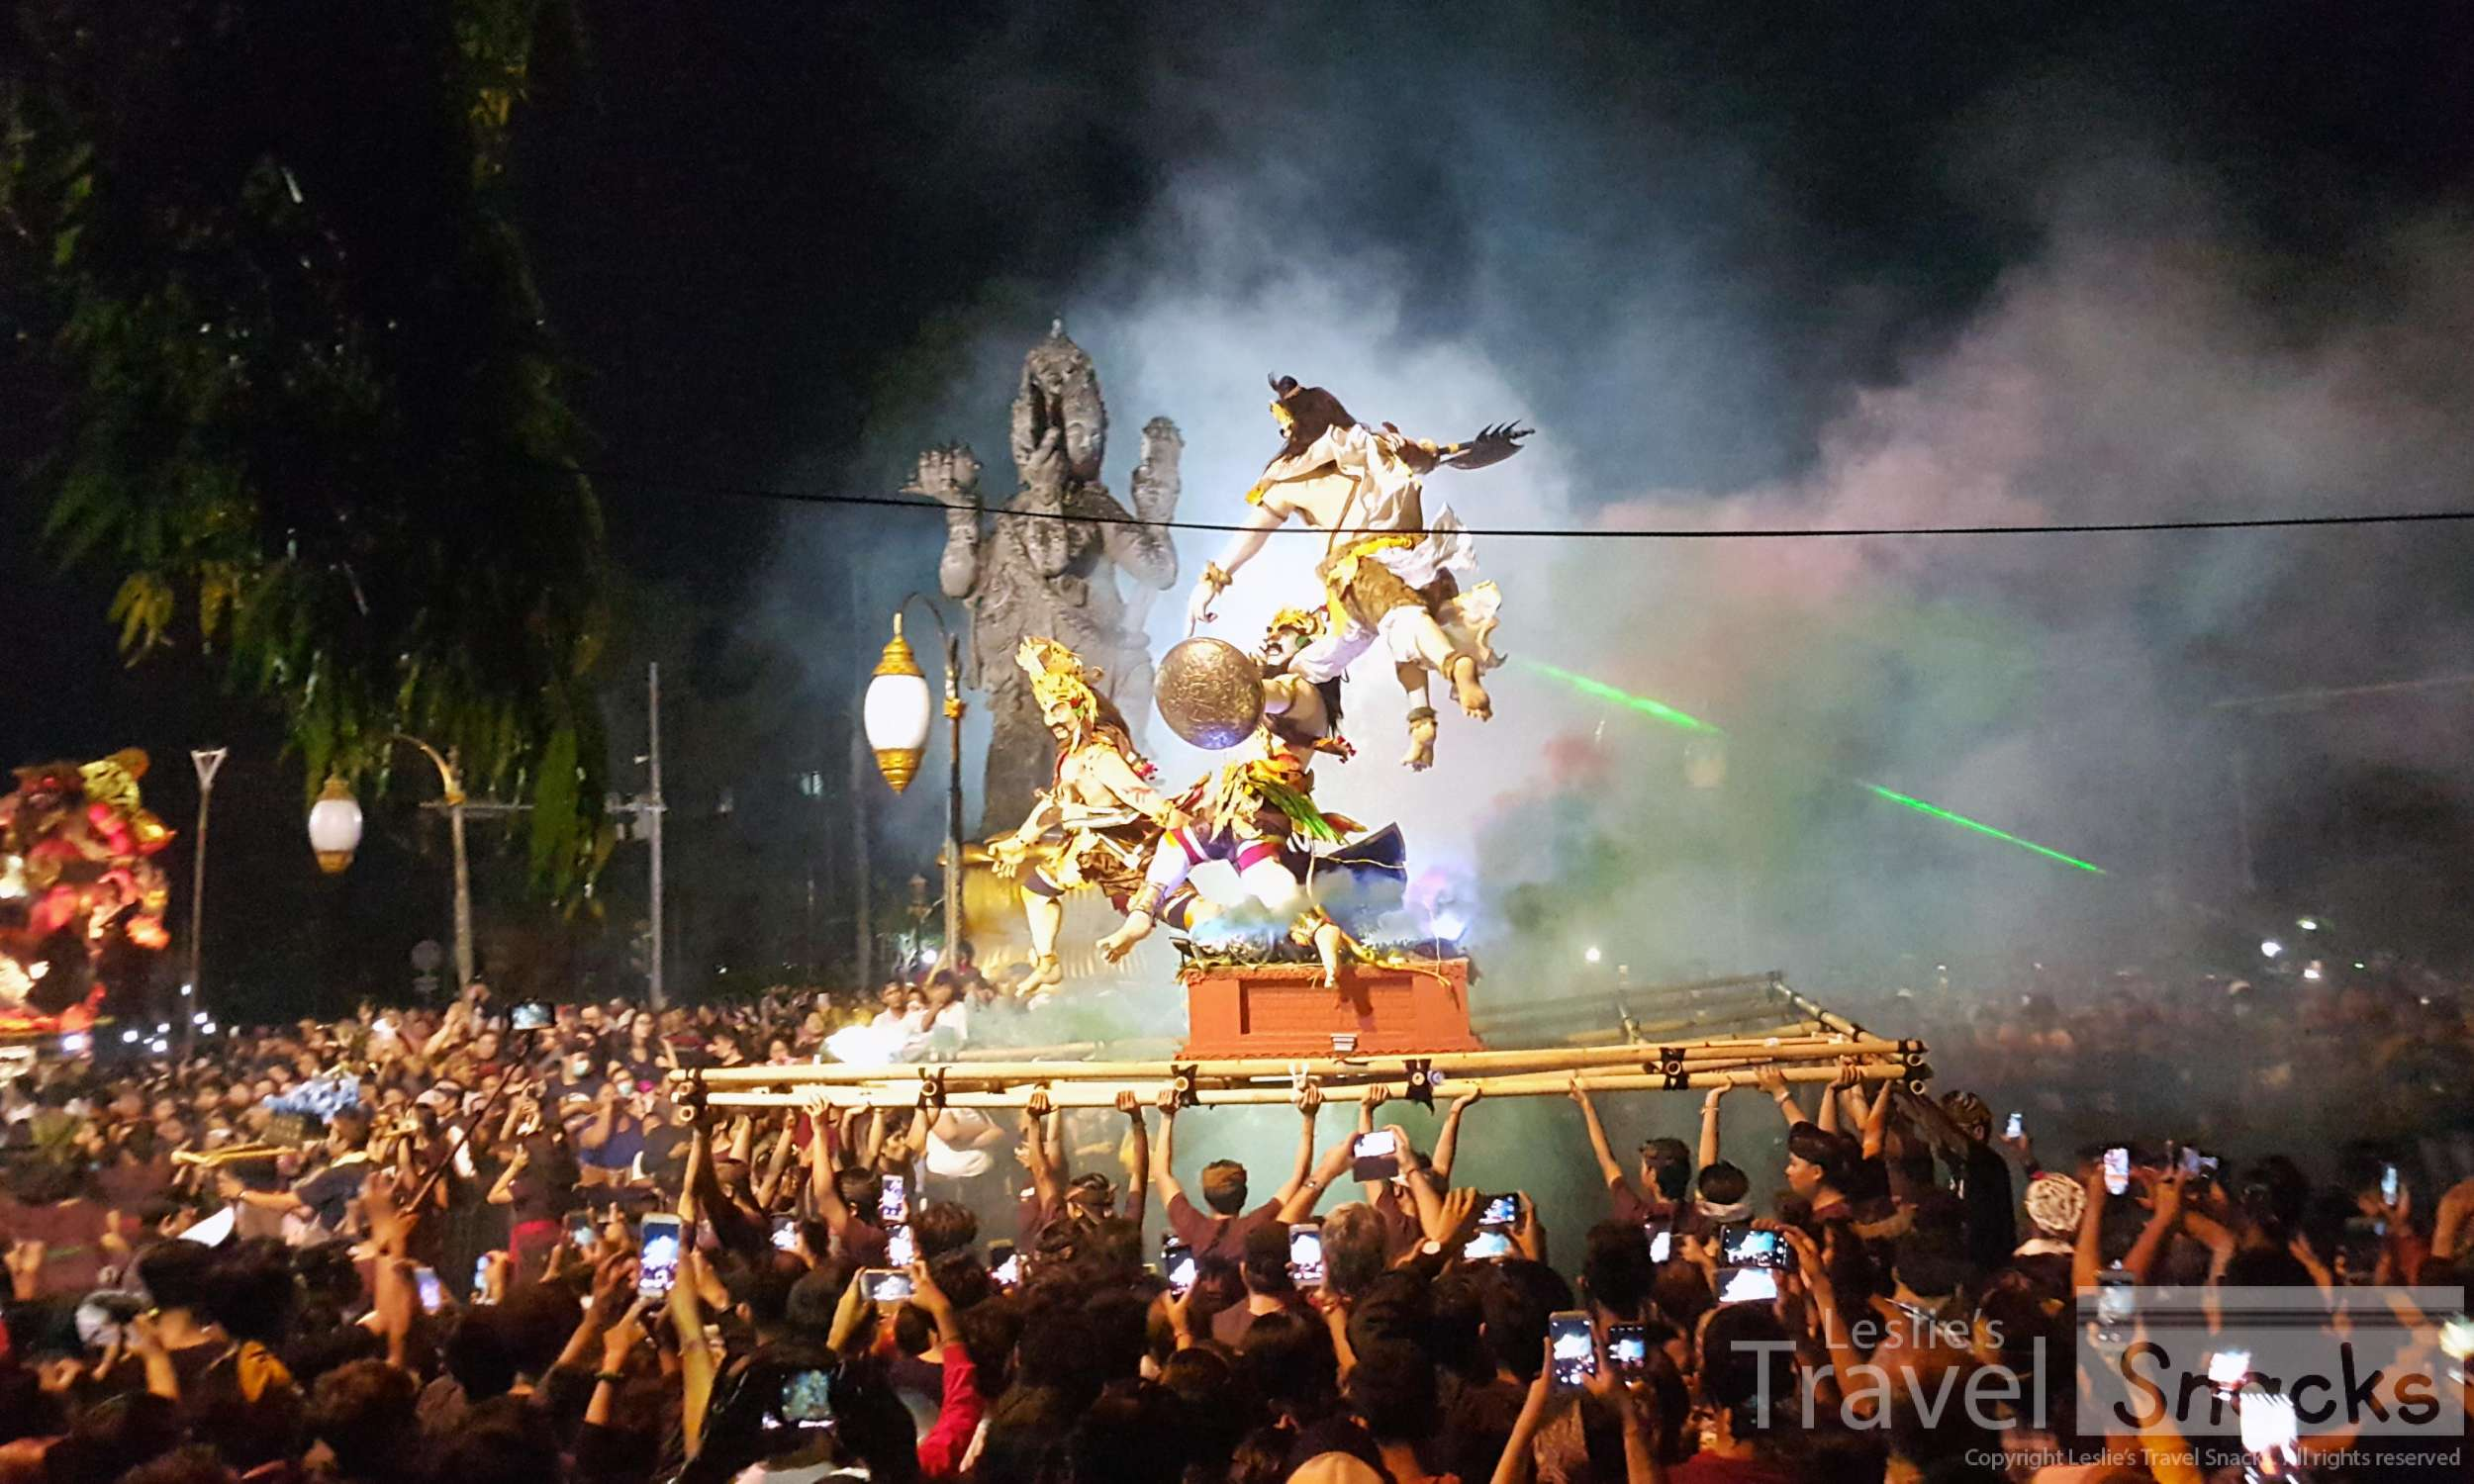 The Patang Catur Muka roundabout in Denpasar is THE BEST place to see the Ogoh-Ogoh parade!!